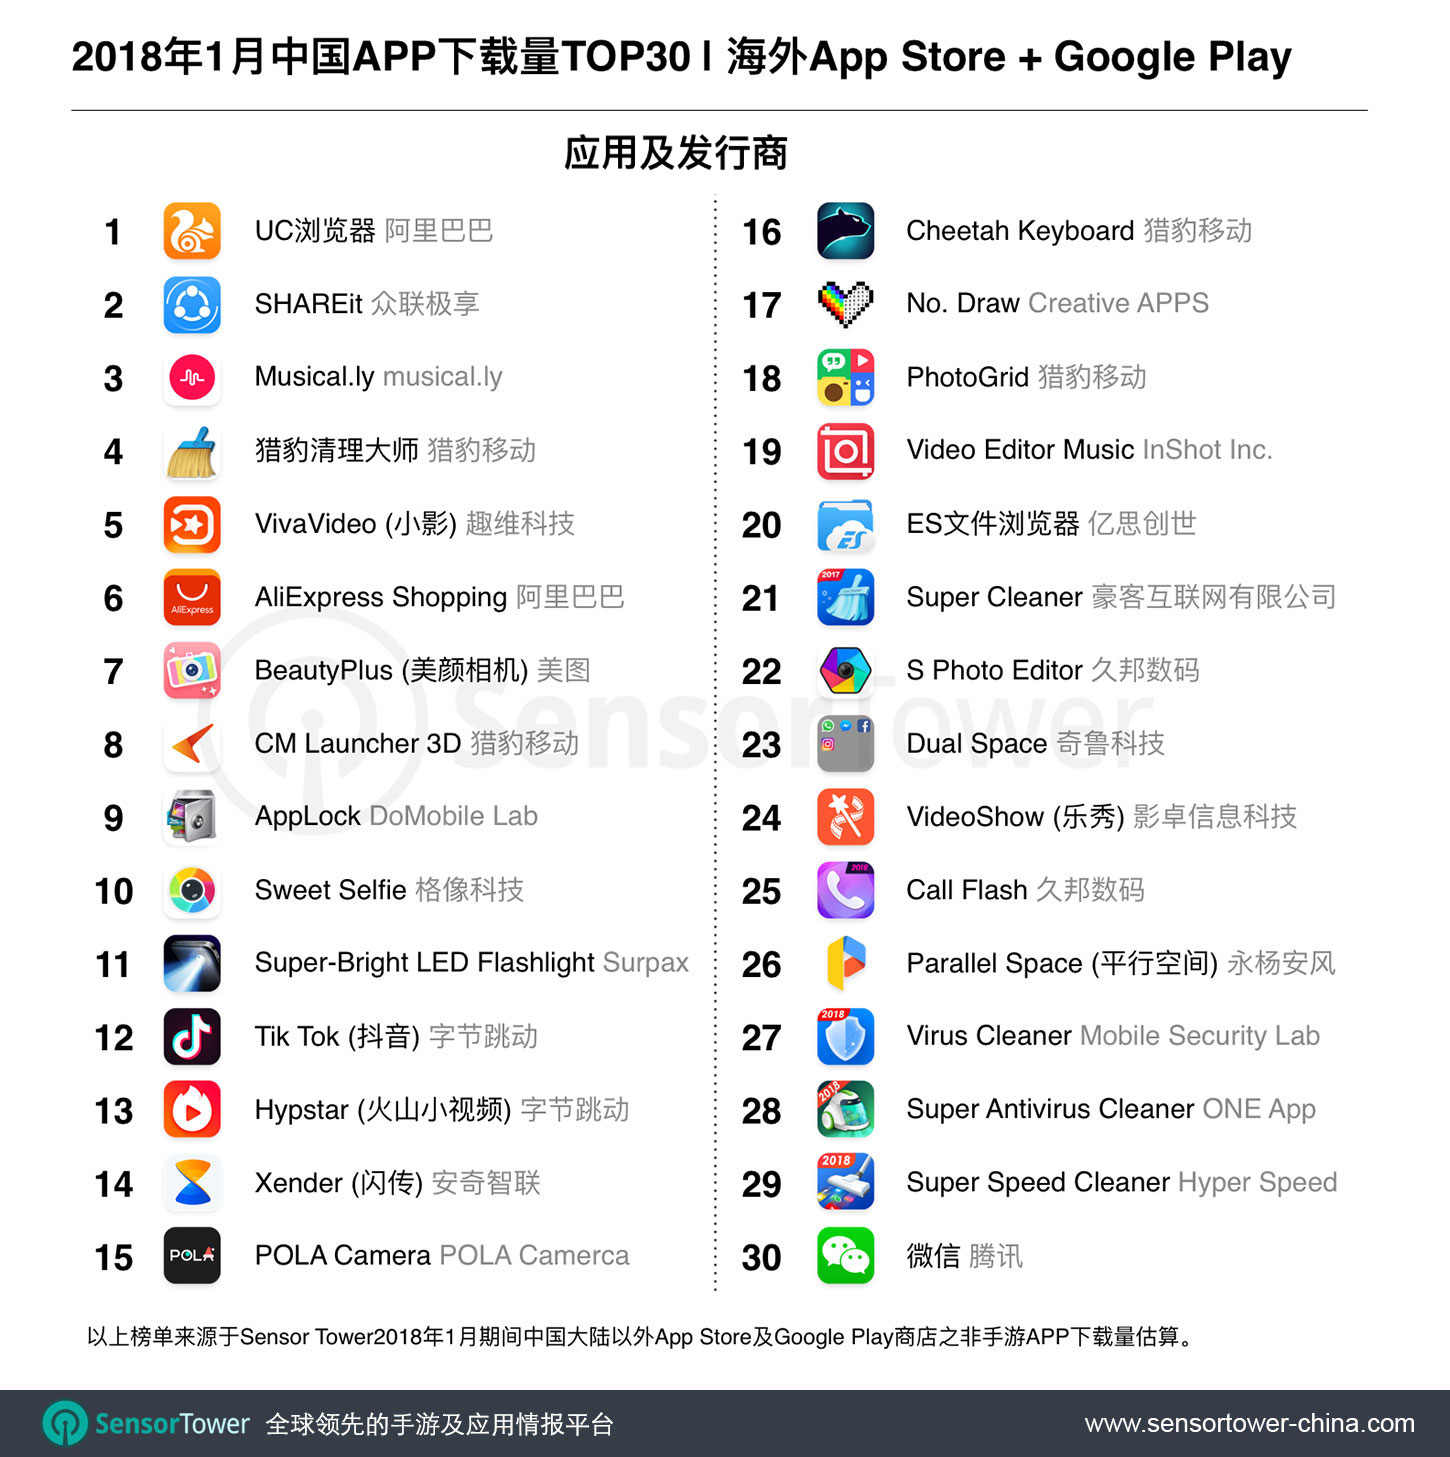 Jan 2018 Top 30 Most Downloaded Chinese-Made Non-Games Apps Outside China